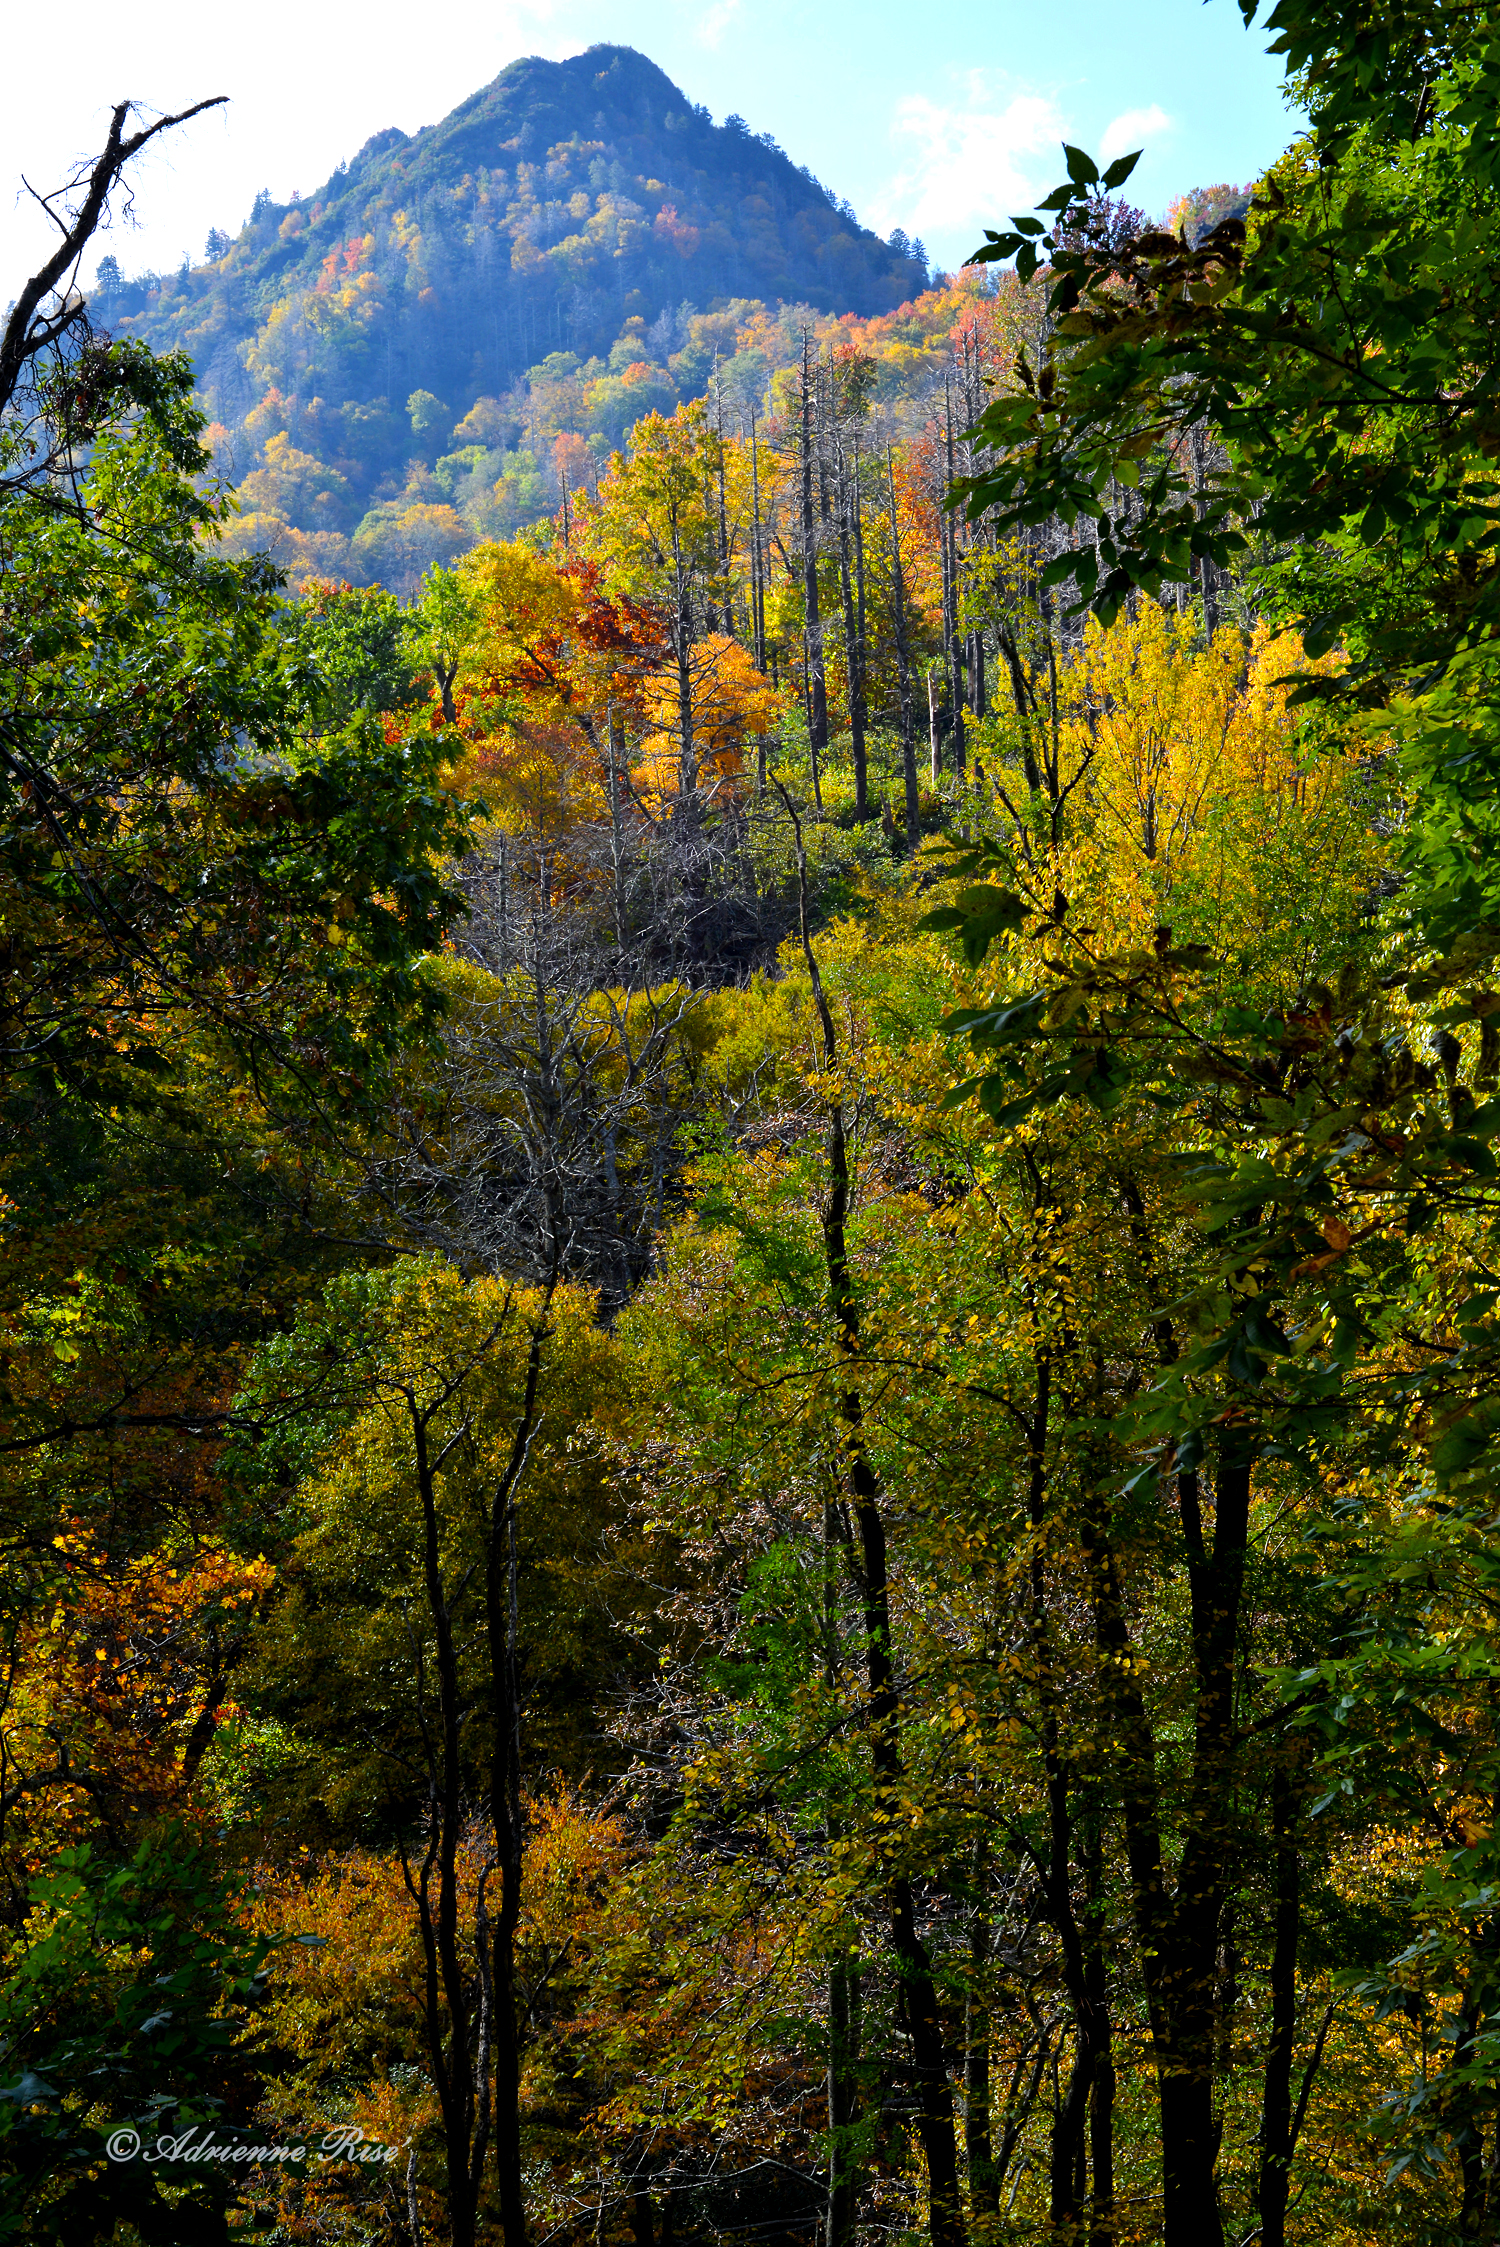 Changing seasons, Great Smokey Mt National Park: Nikon D-600